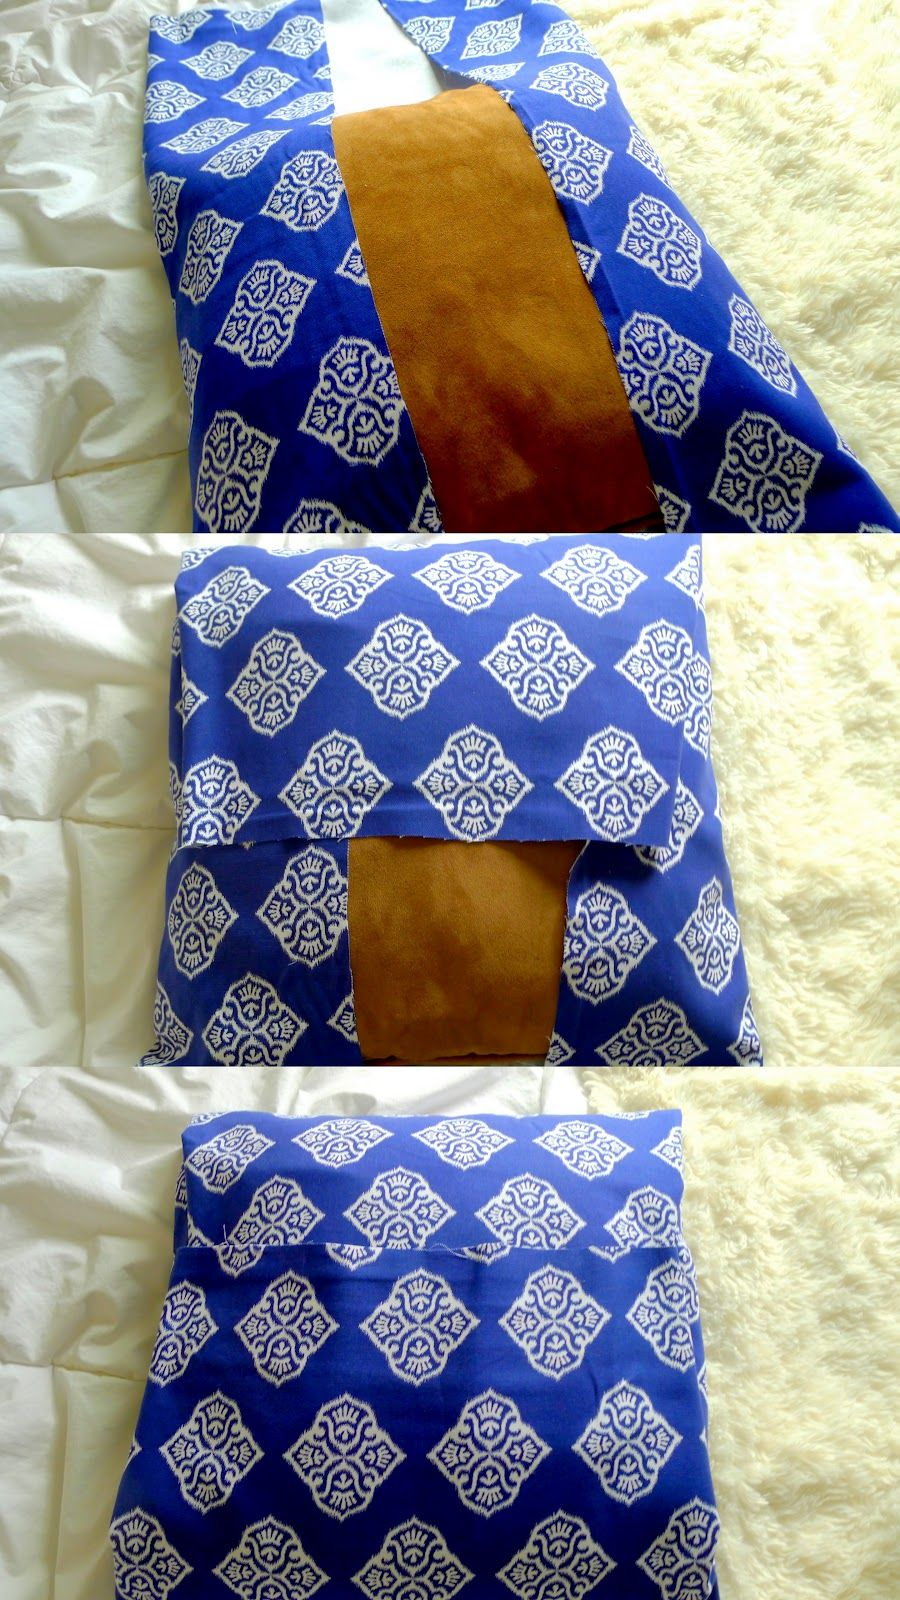 How To Sew A Pillow Cover Awesome Diy No Sew Pillow 10 Minute Project That Costs Less Than A Drink Inspiration